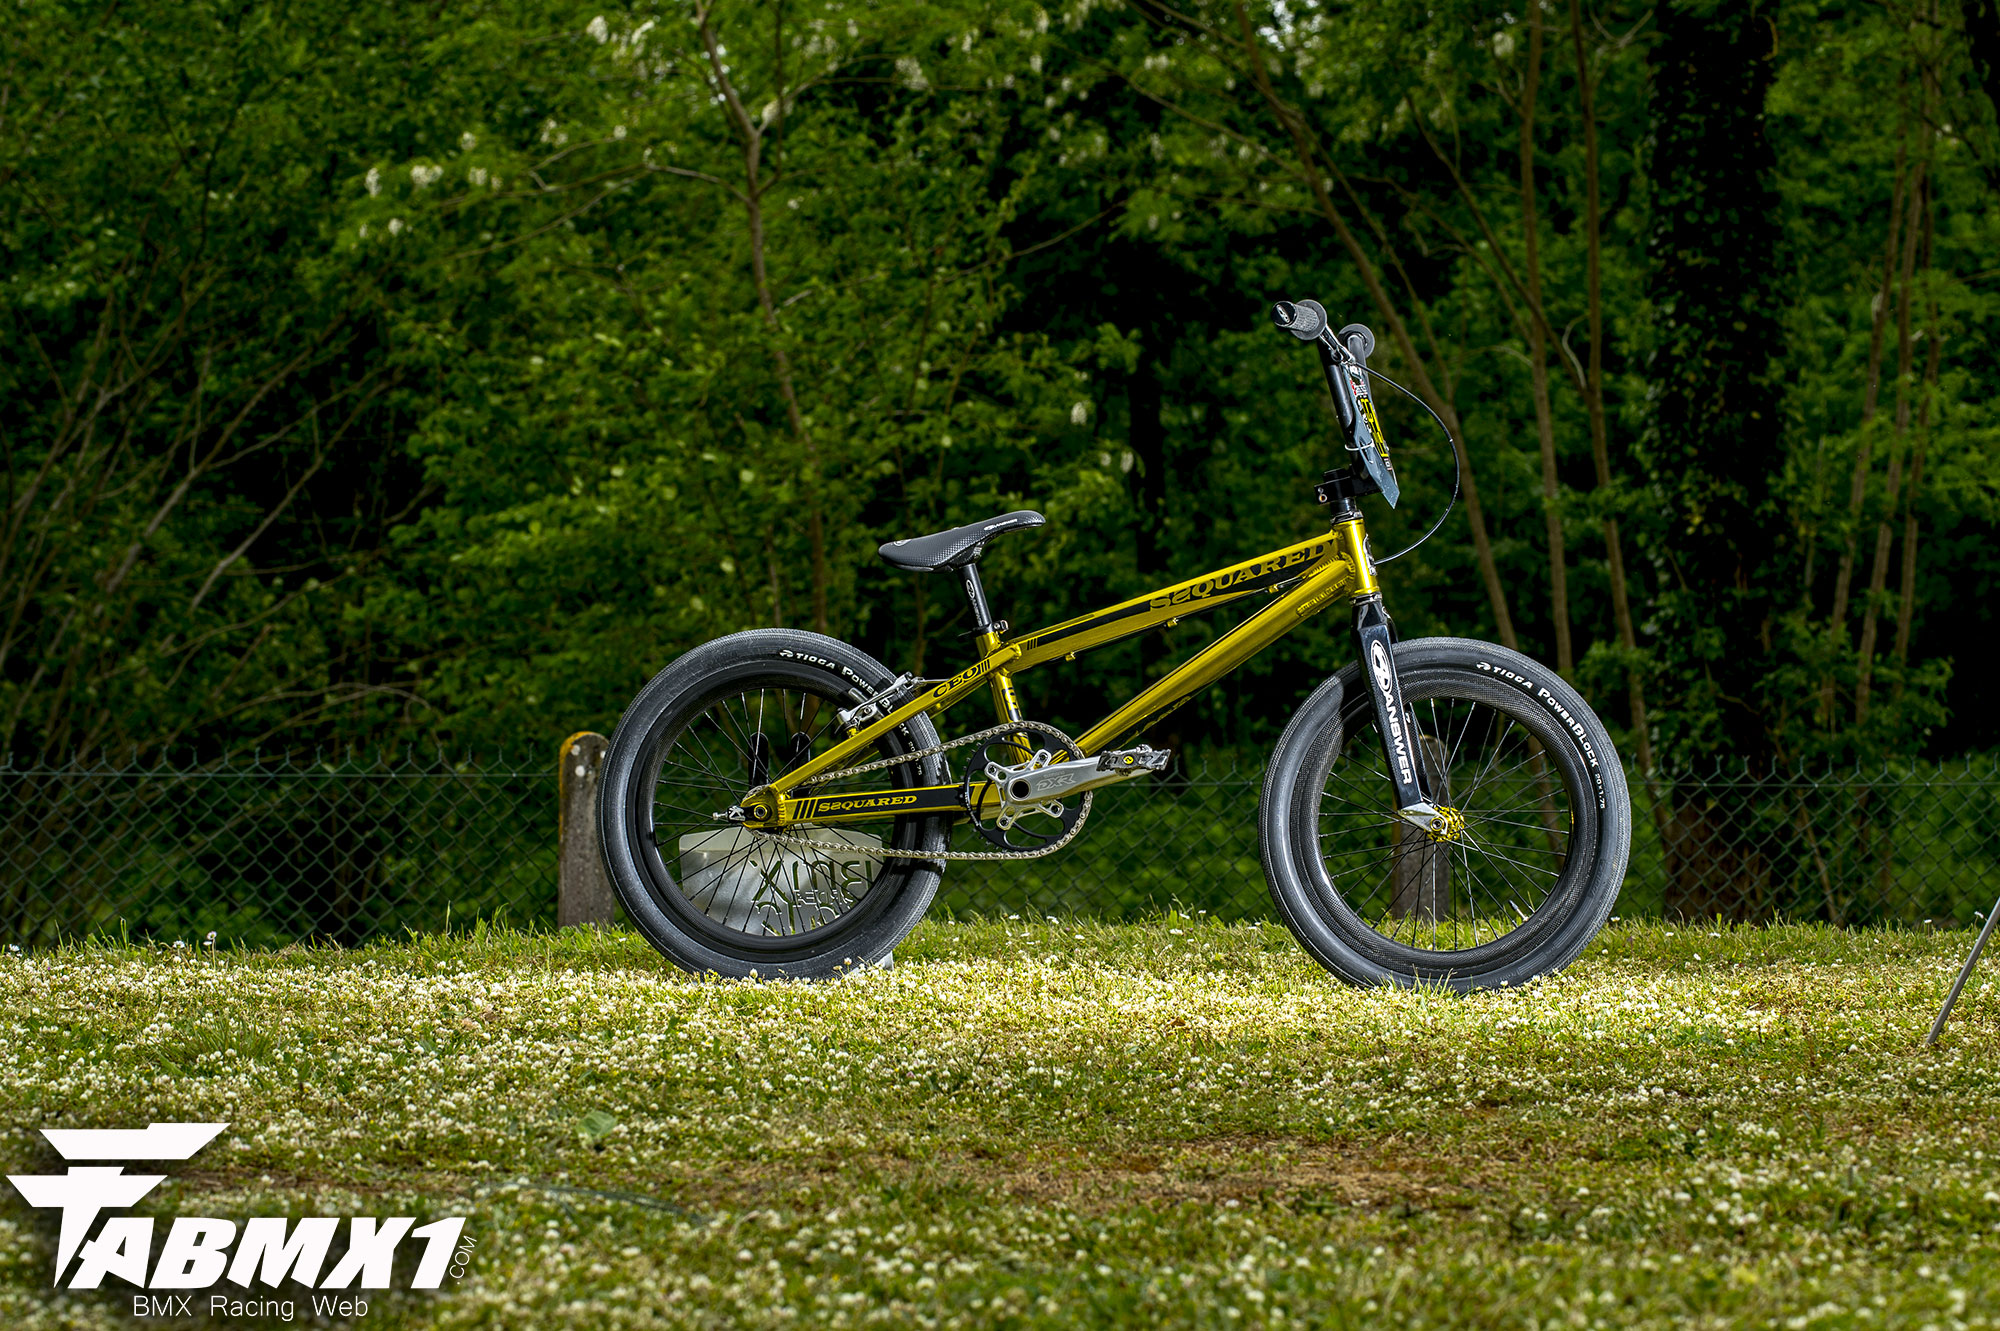 Fabmx1 Ssquared Gold Machine By Yohan Dodeler